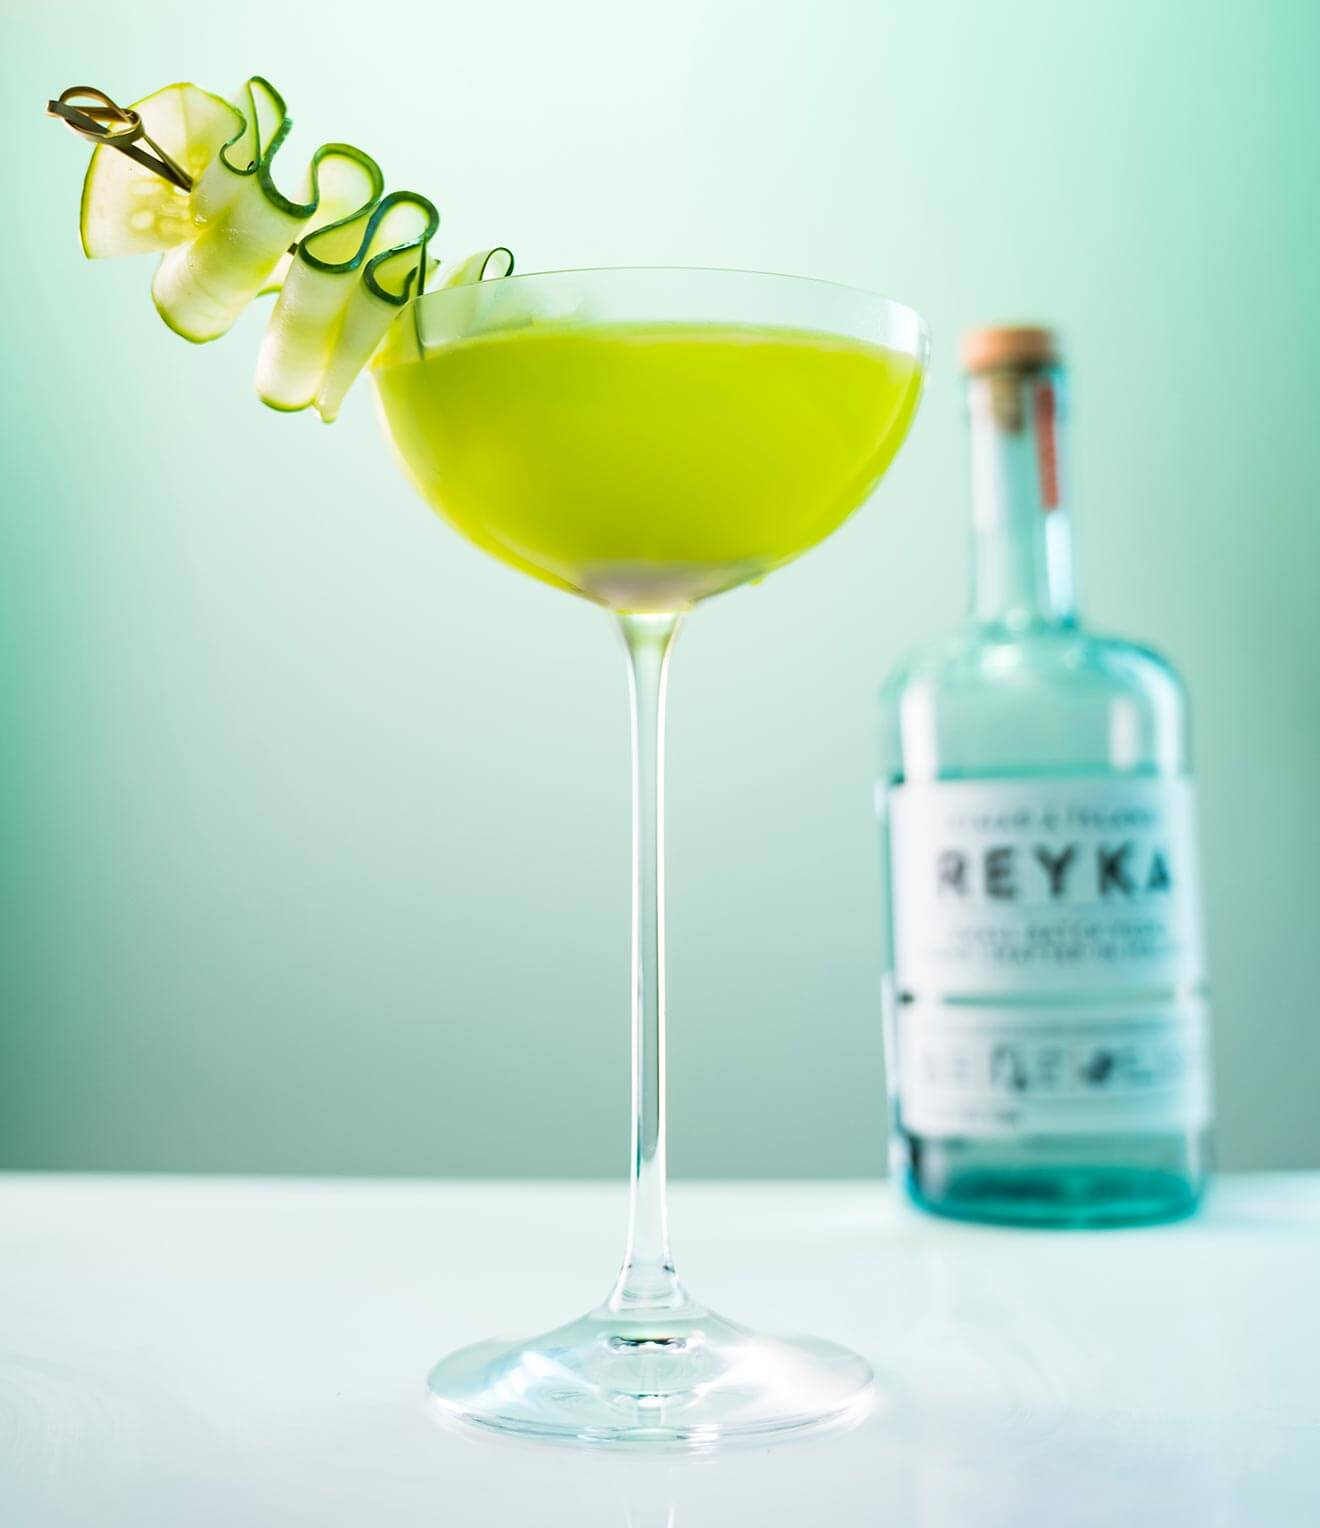 The Sophisticated Shamrock, cocktail with cucumber garnish and bottle